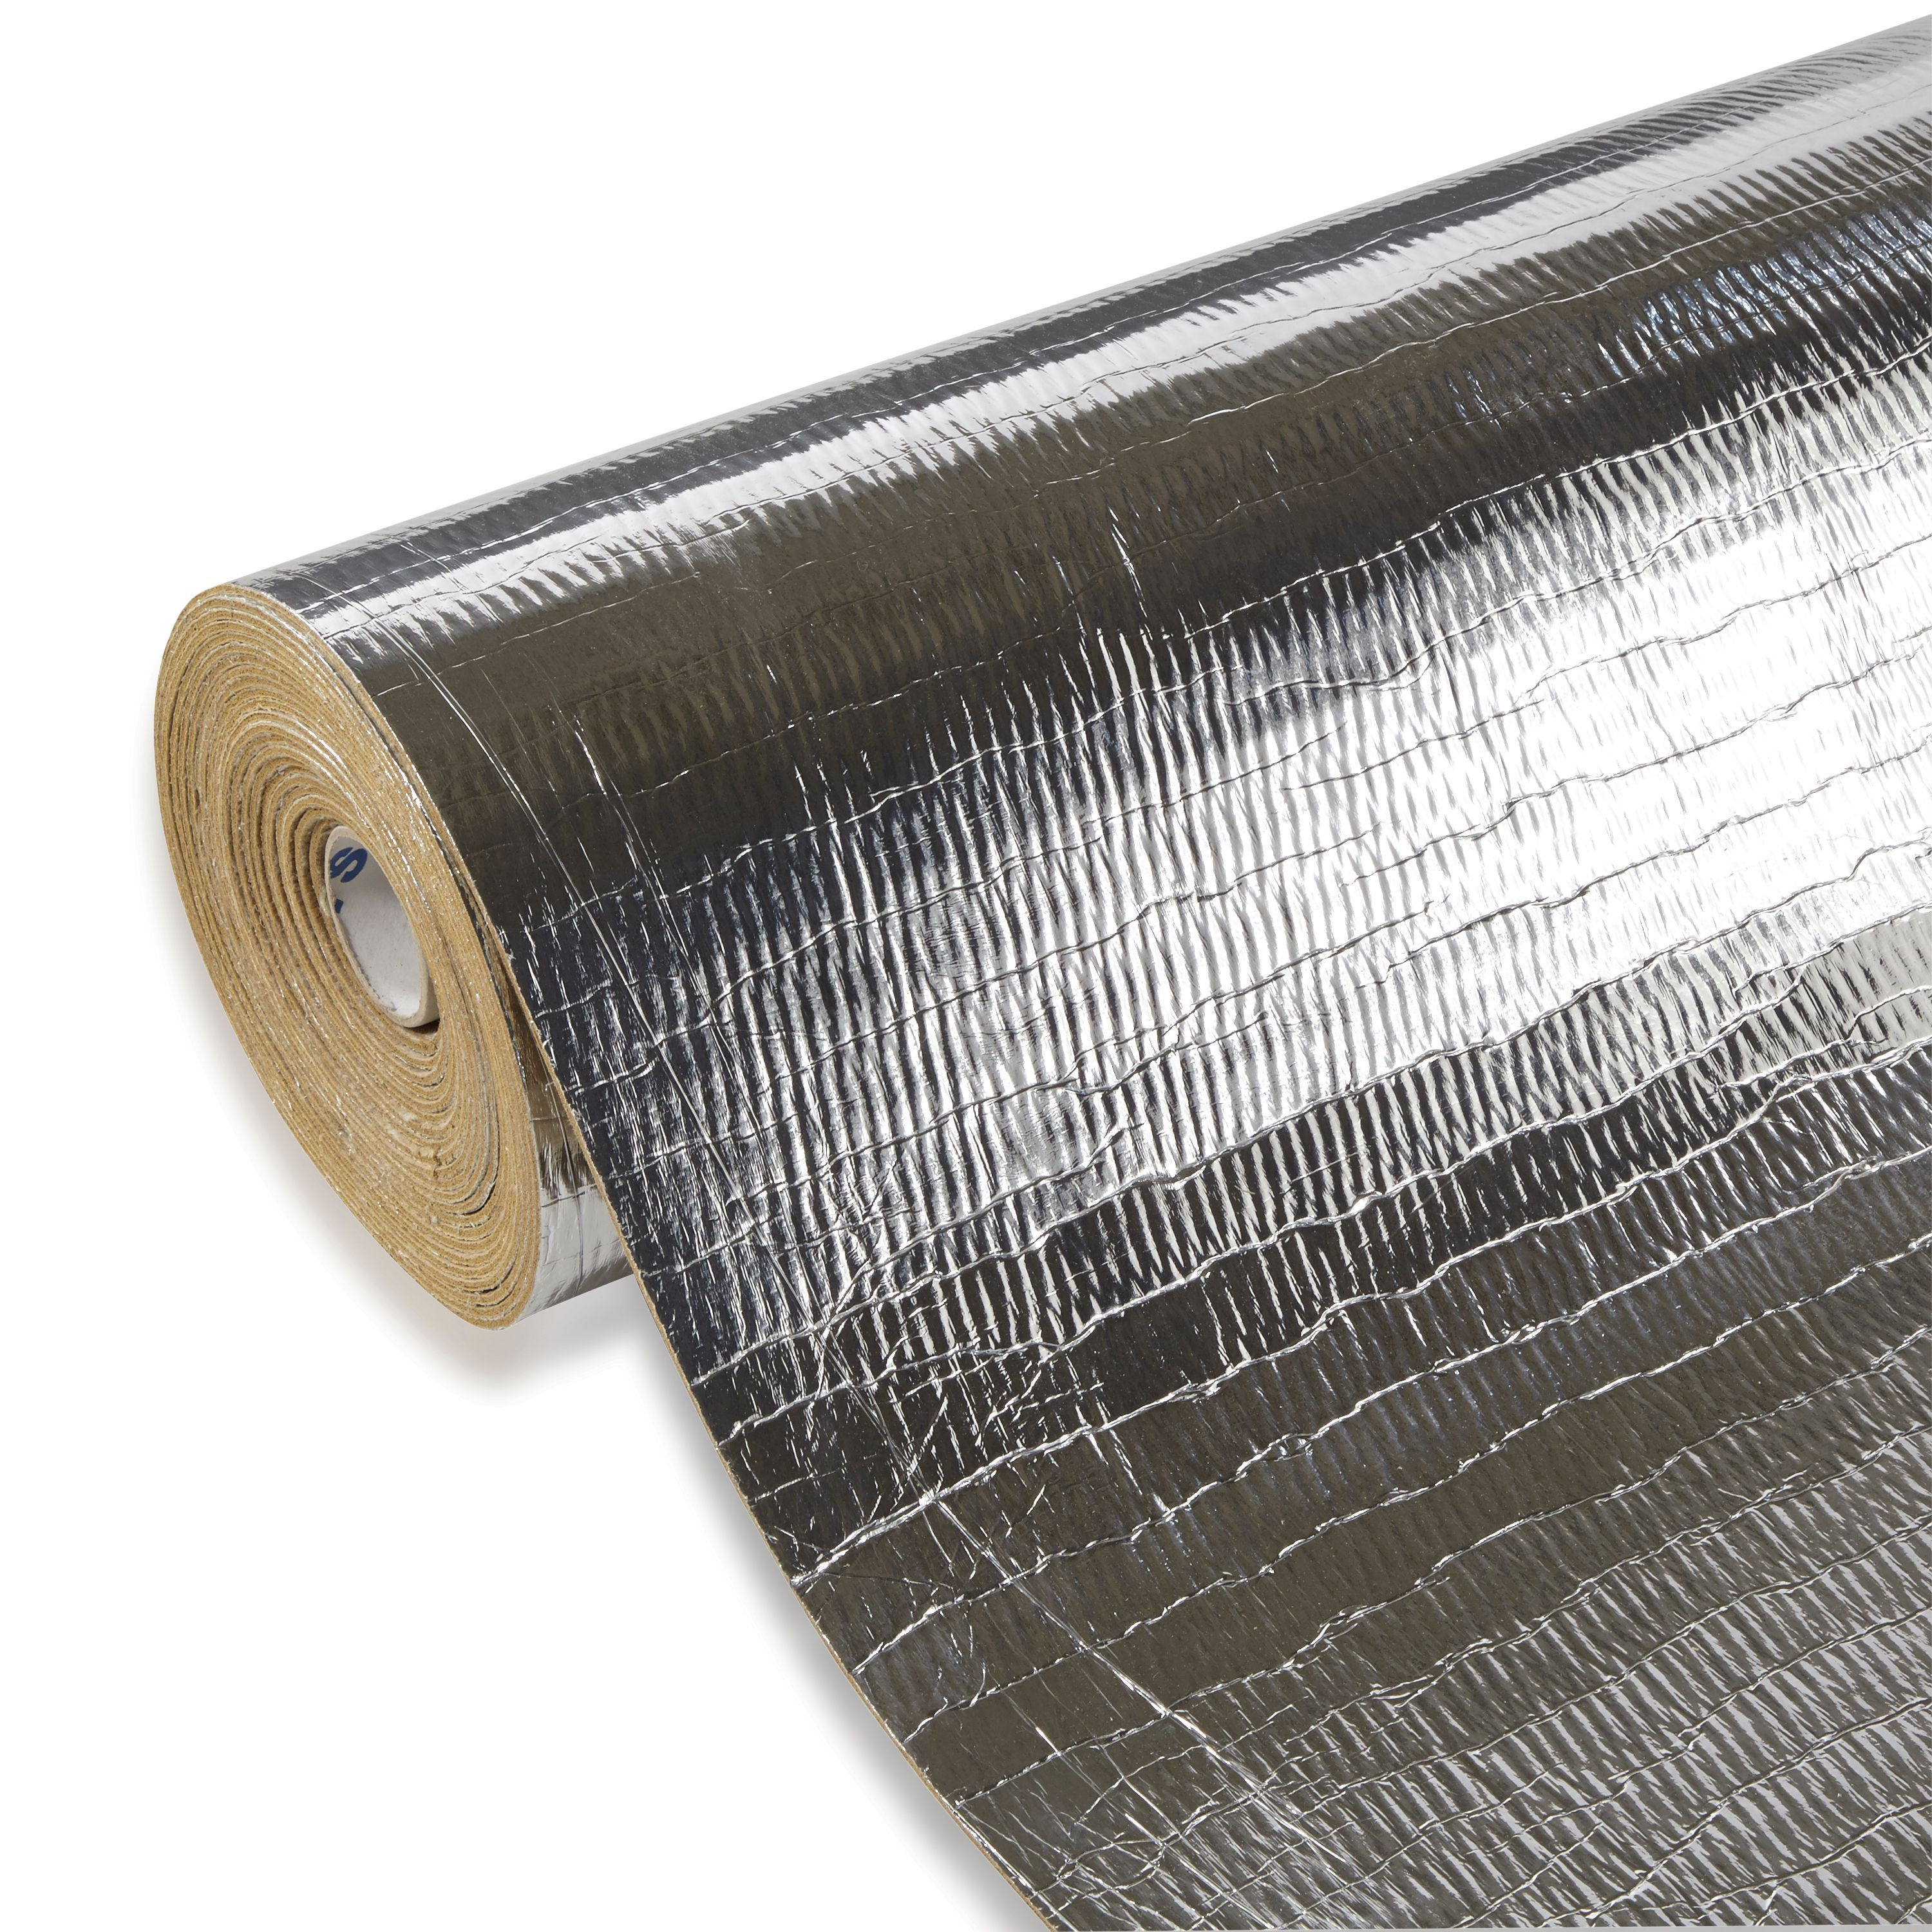 Duralay Silentwalk 3mm Sponge Rubber with Foil Backing